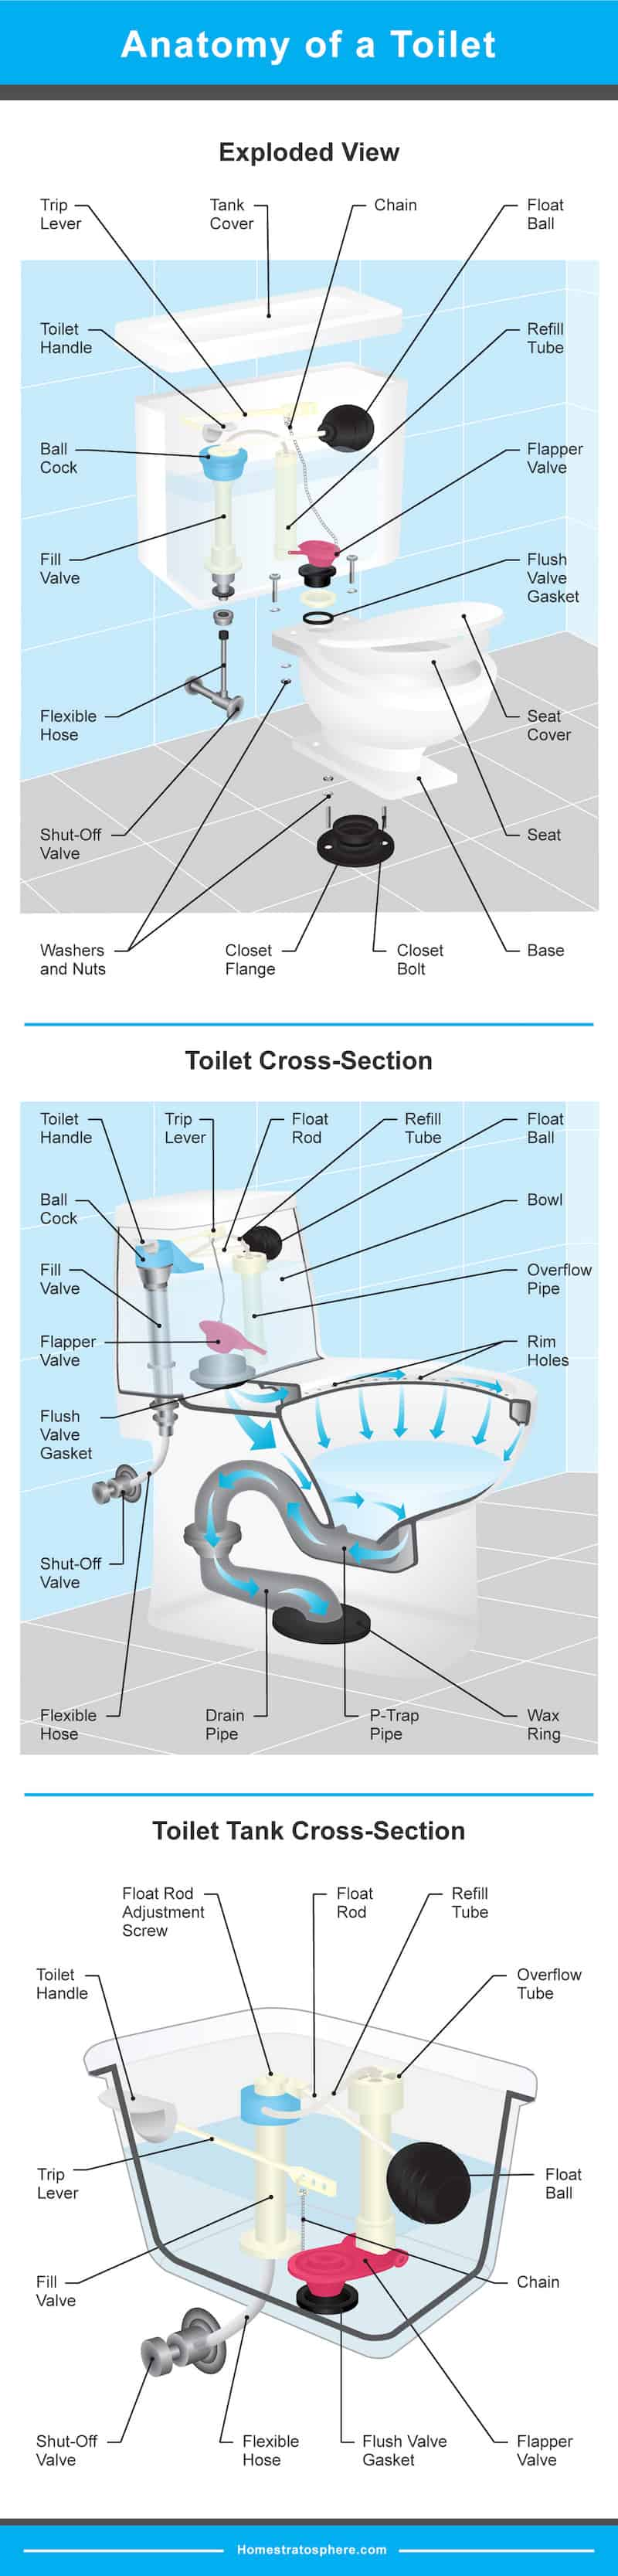 Diagram setting out all the different parts of a toilet - the tank, bowl and plumbing.